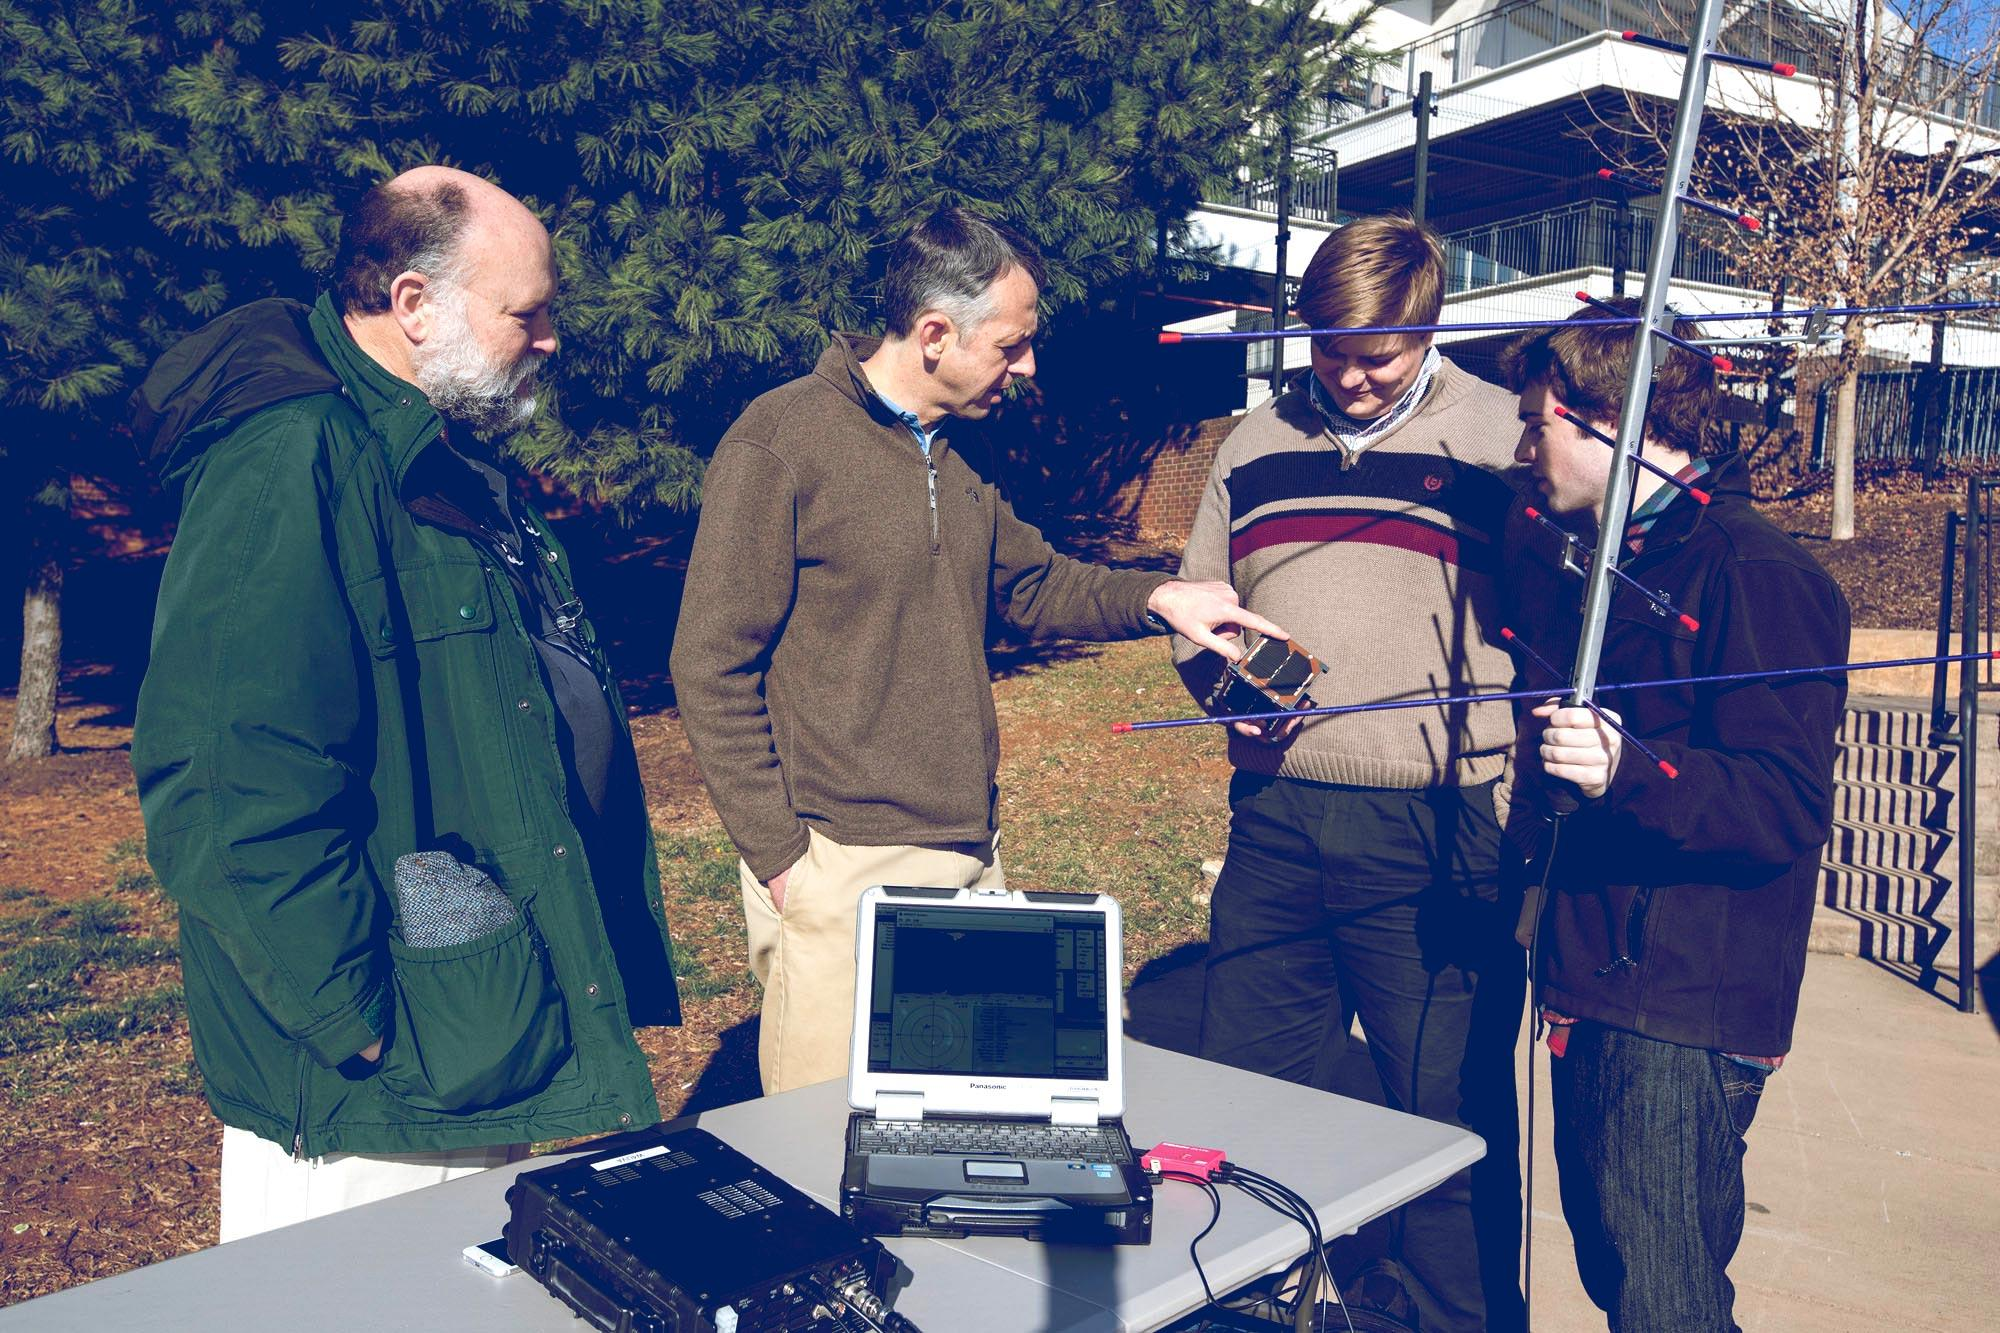 Amateur radio club trustee Michael McPherson, left, Professor Chris Goyne and engineering students Colin Mitchell and Tyler Gabriele, attempt to track a satellite using a UHF radio and hand-held antenna. (Photo: Dan Addison University Communications)